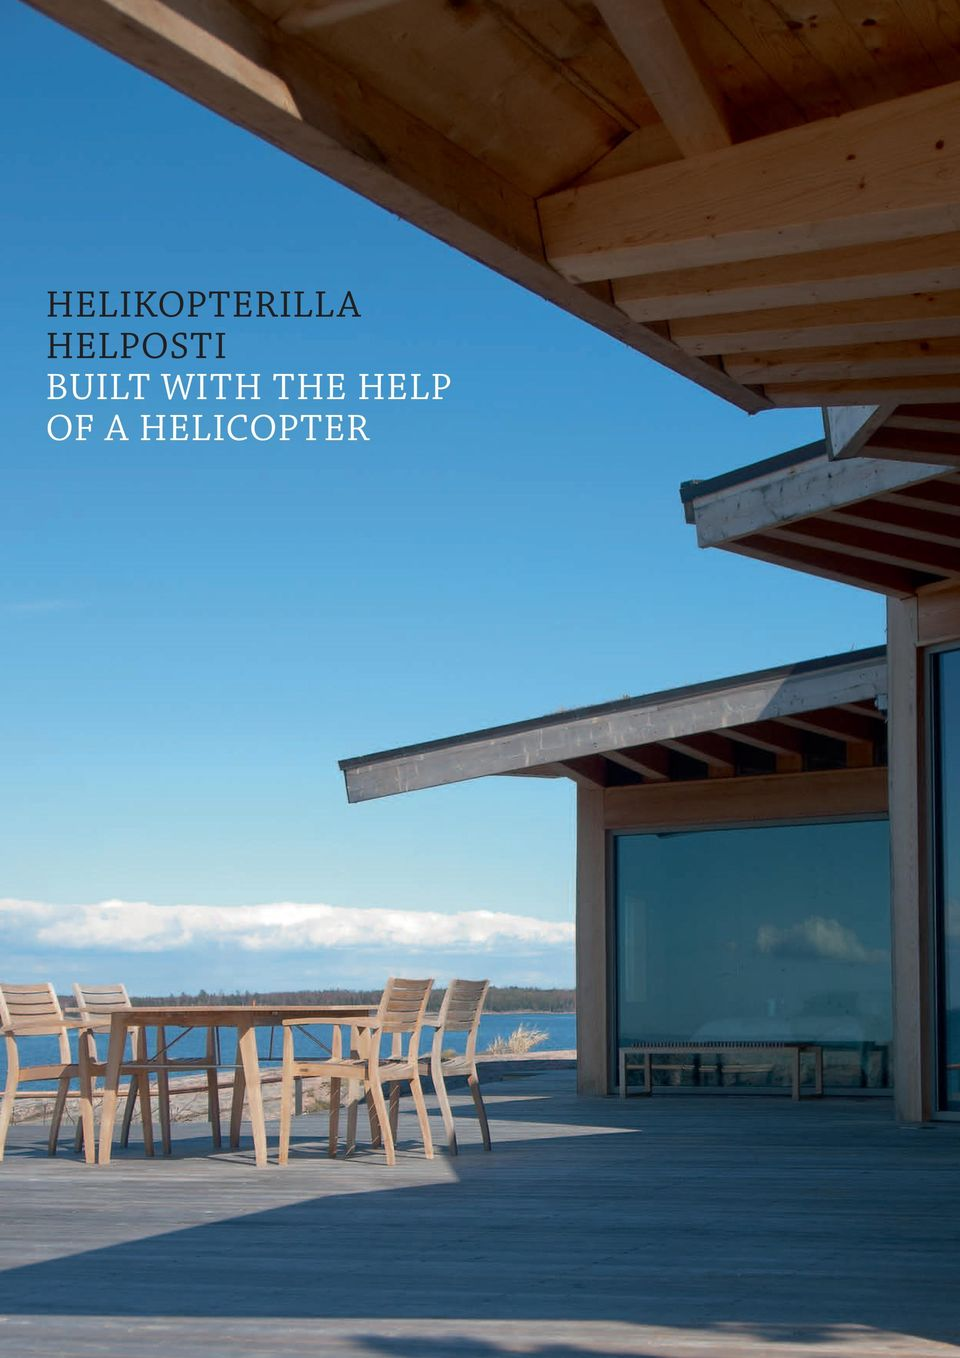 HELPOSTI BUILT WITH